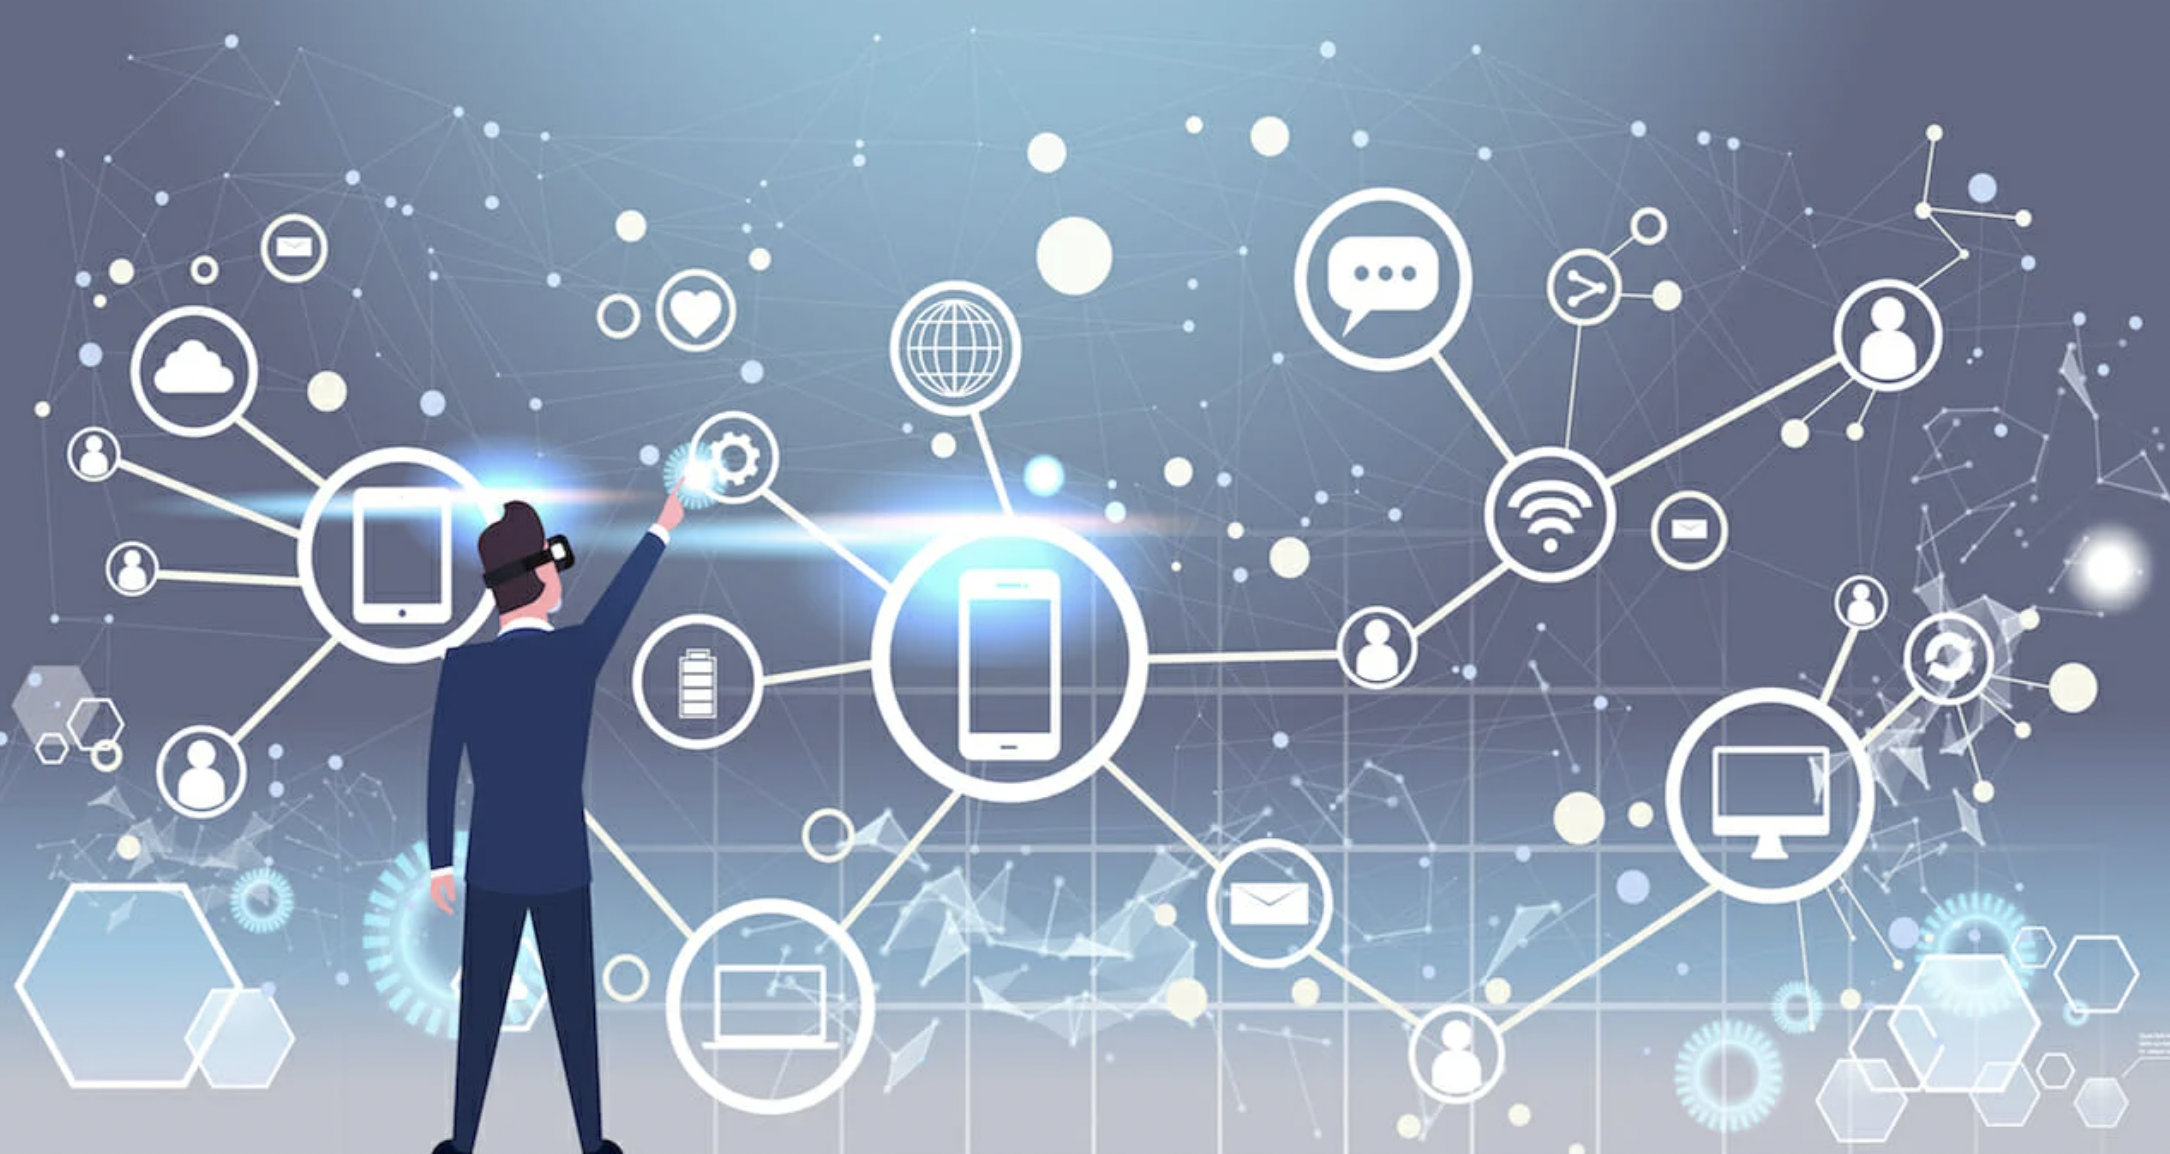 The future of digital marketing: 5 ways to prepare for it